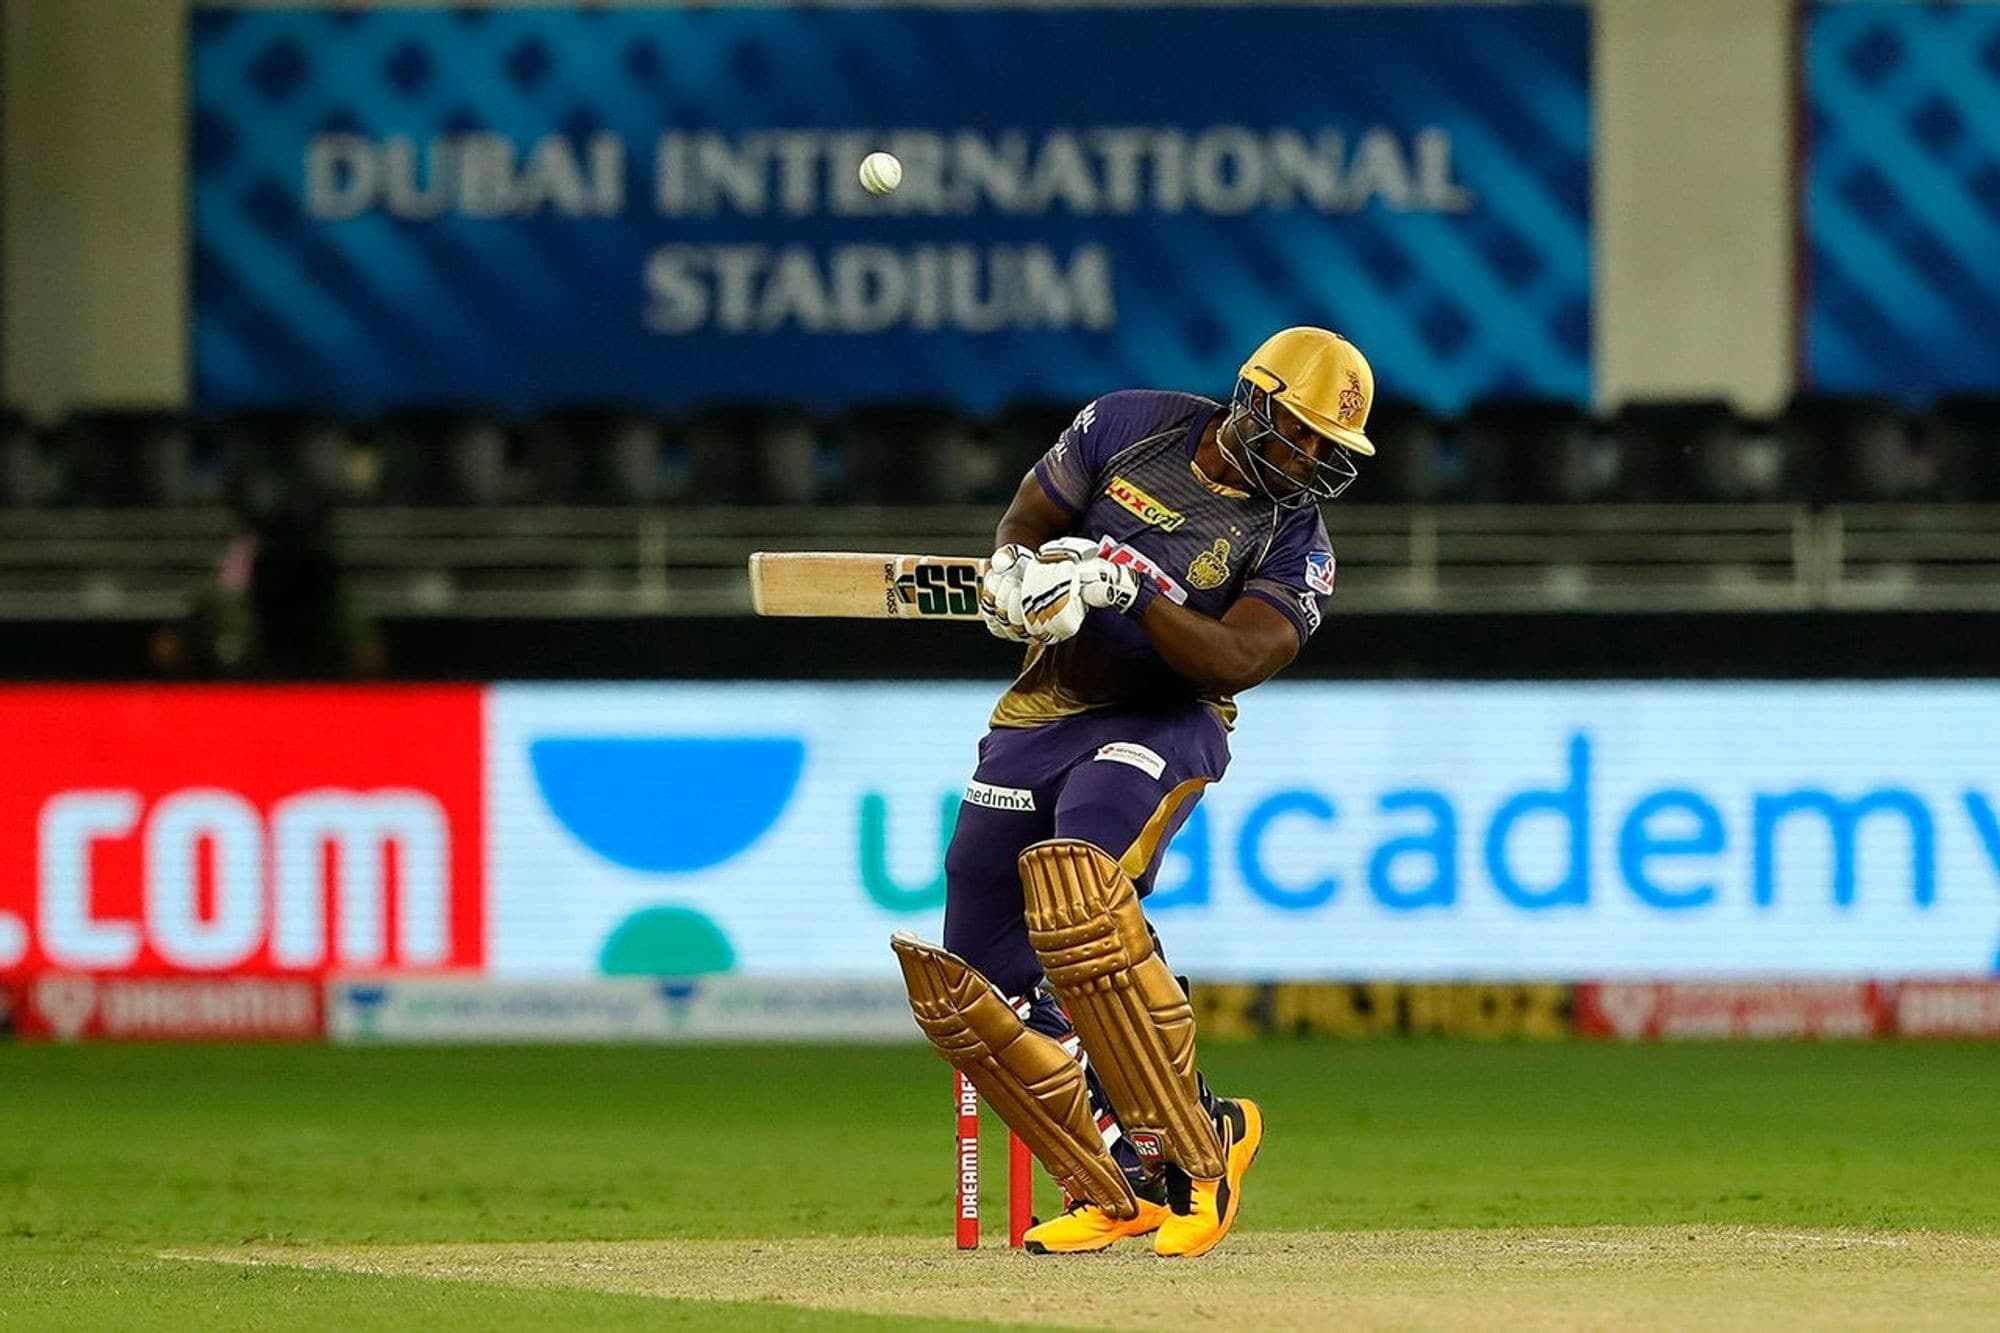 IPL 2020: What Has Happened to Andre Russell - The Most Destructive Batsman in IPL History?